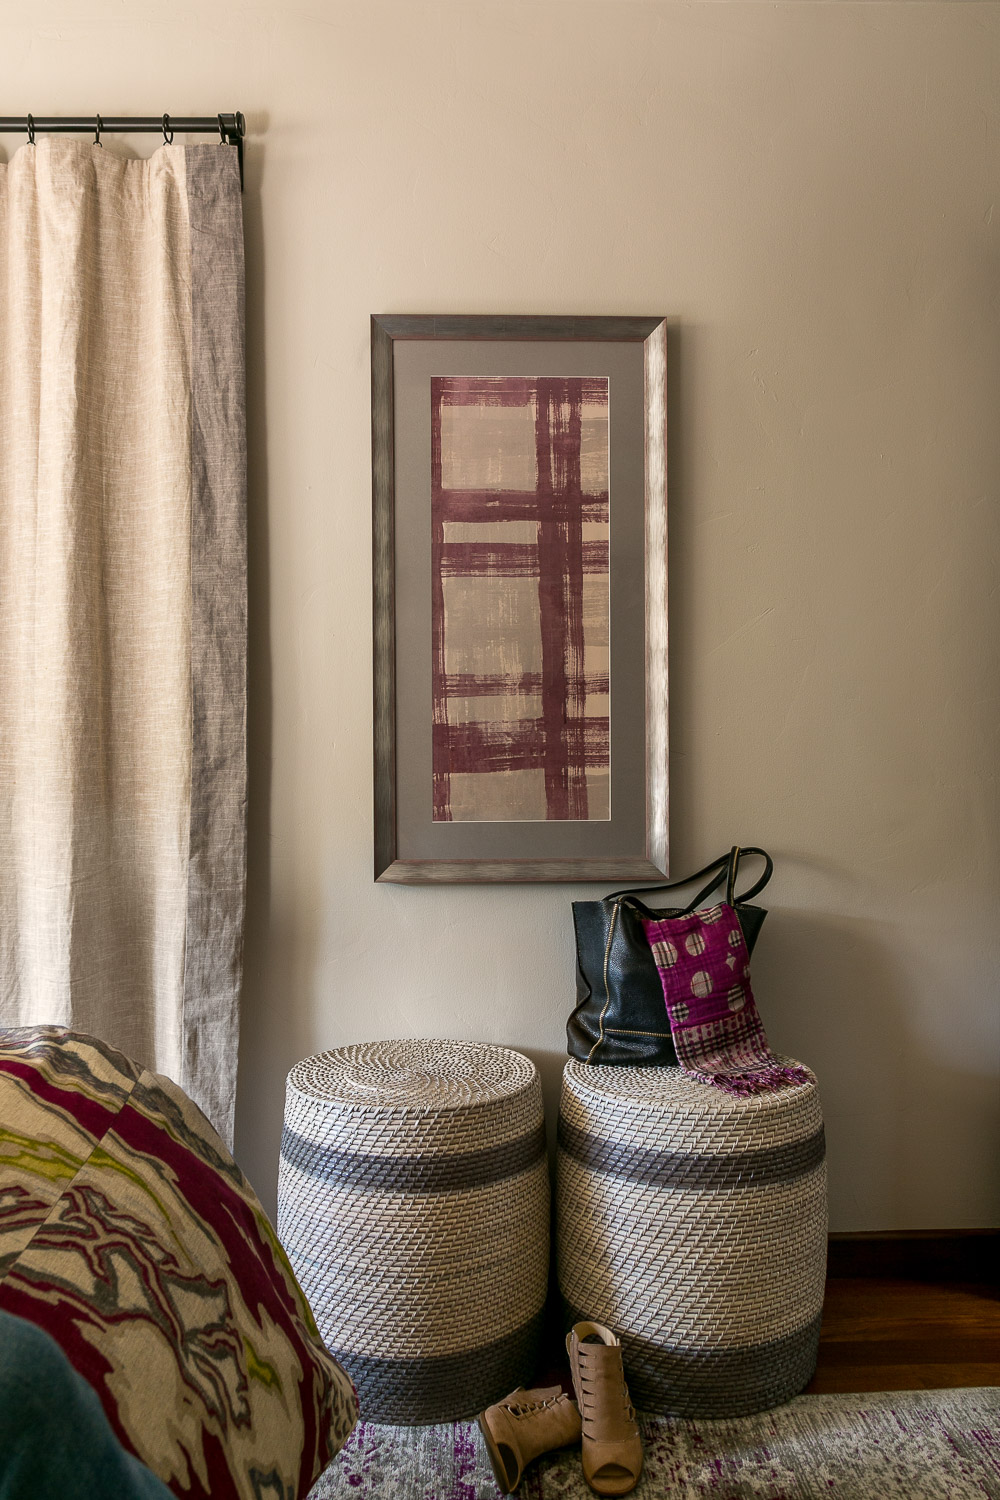 Design by Price Style and Design. Photography by  Kathryn MacDonald.